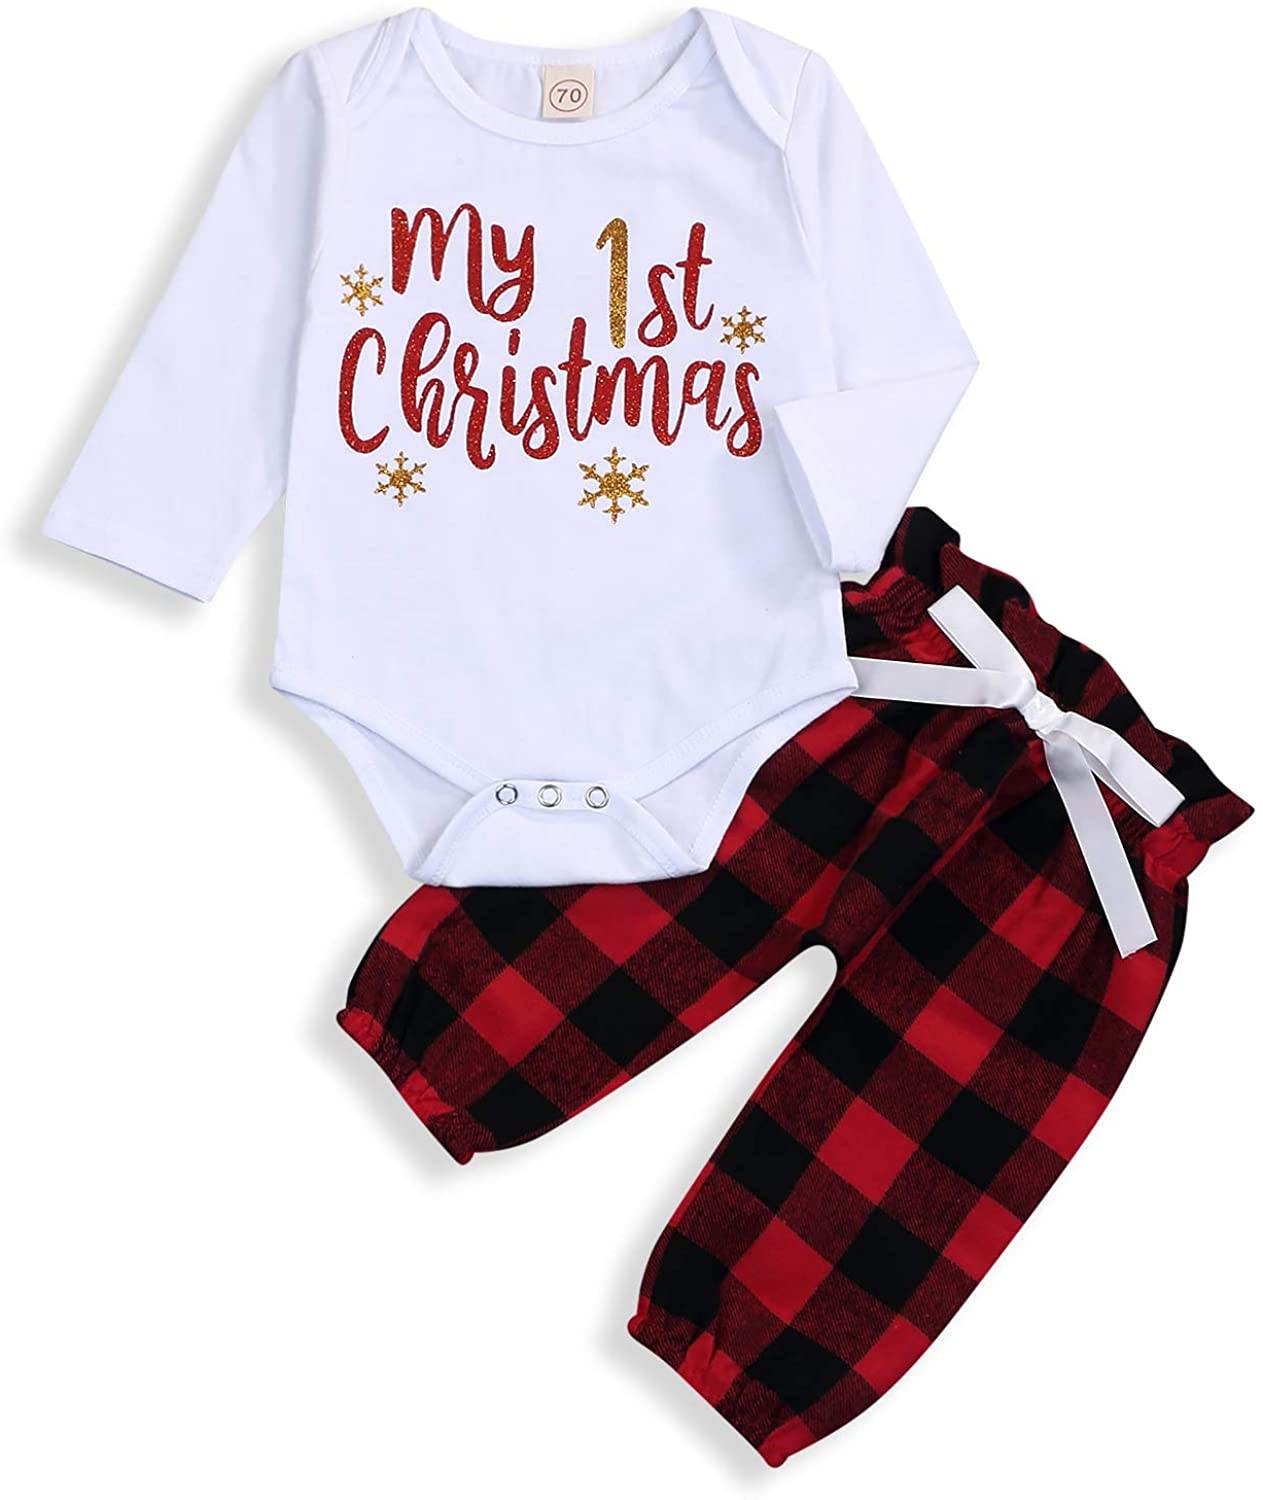 1st Christmas Outfits Toddler Baby Girl Boy Pants Sets Long Sleeve Romper + Plaid Pants Winter Clothes 0-24 Months